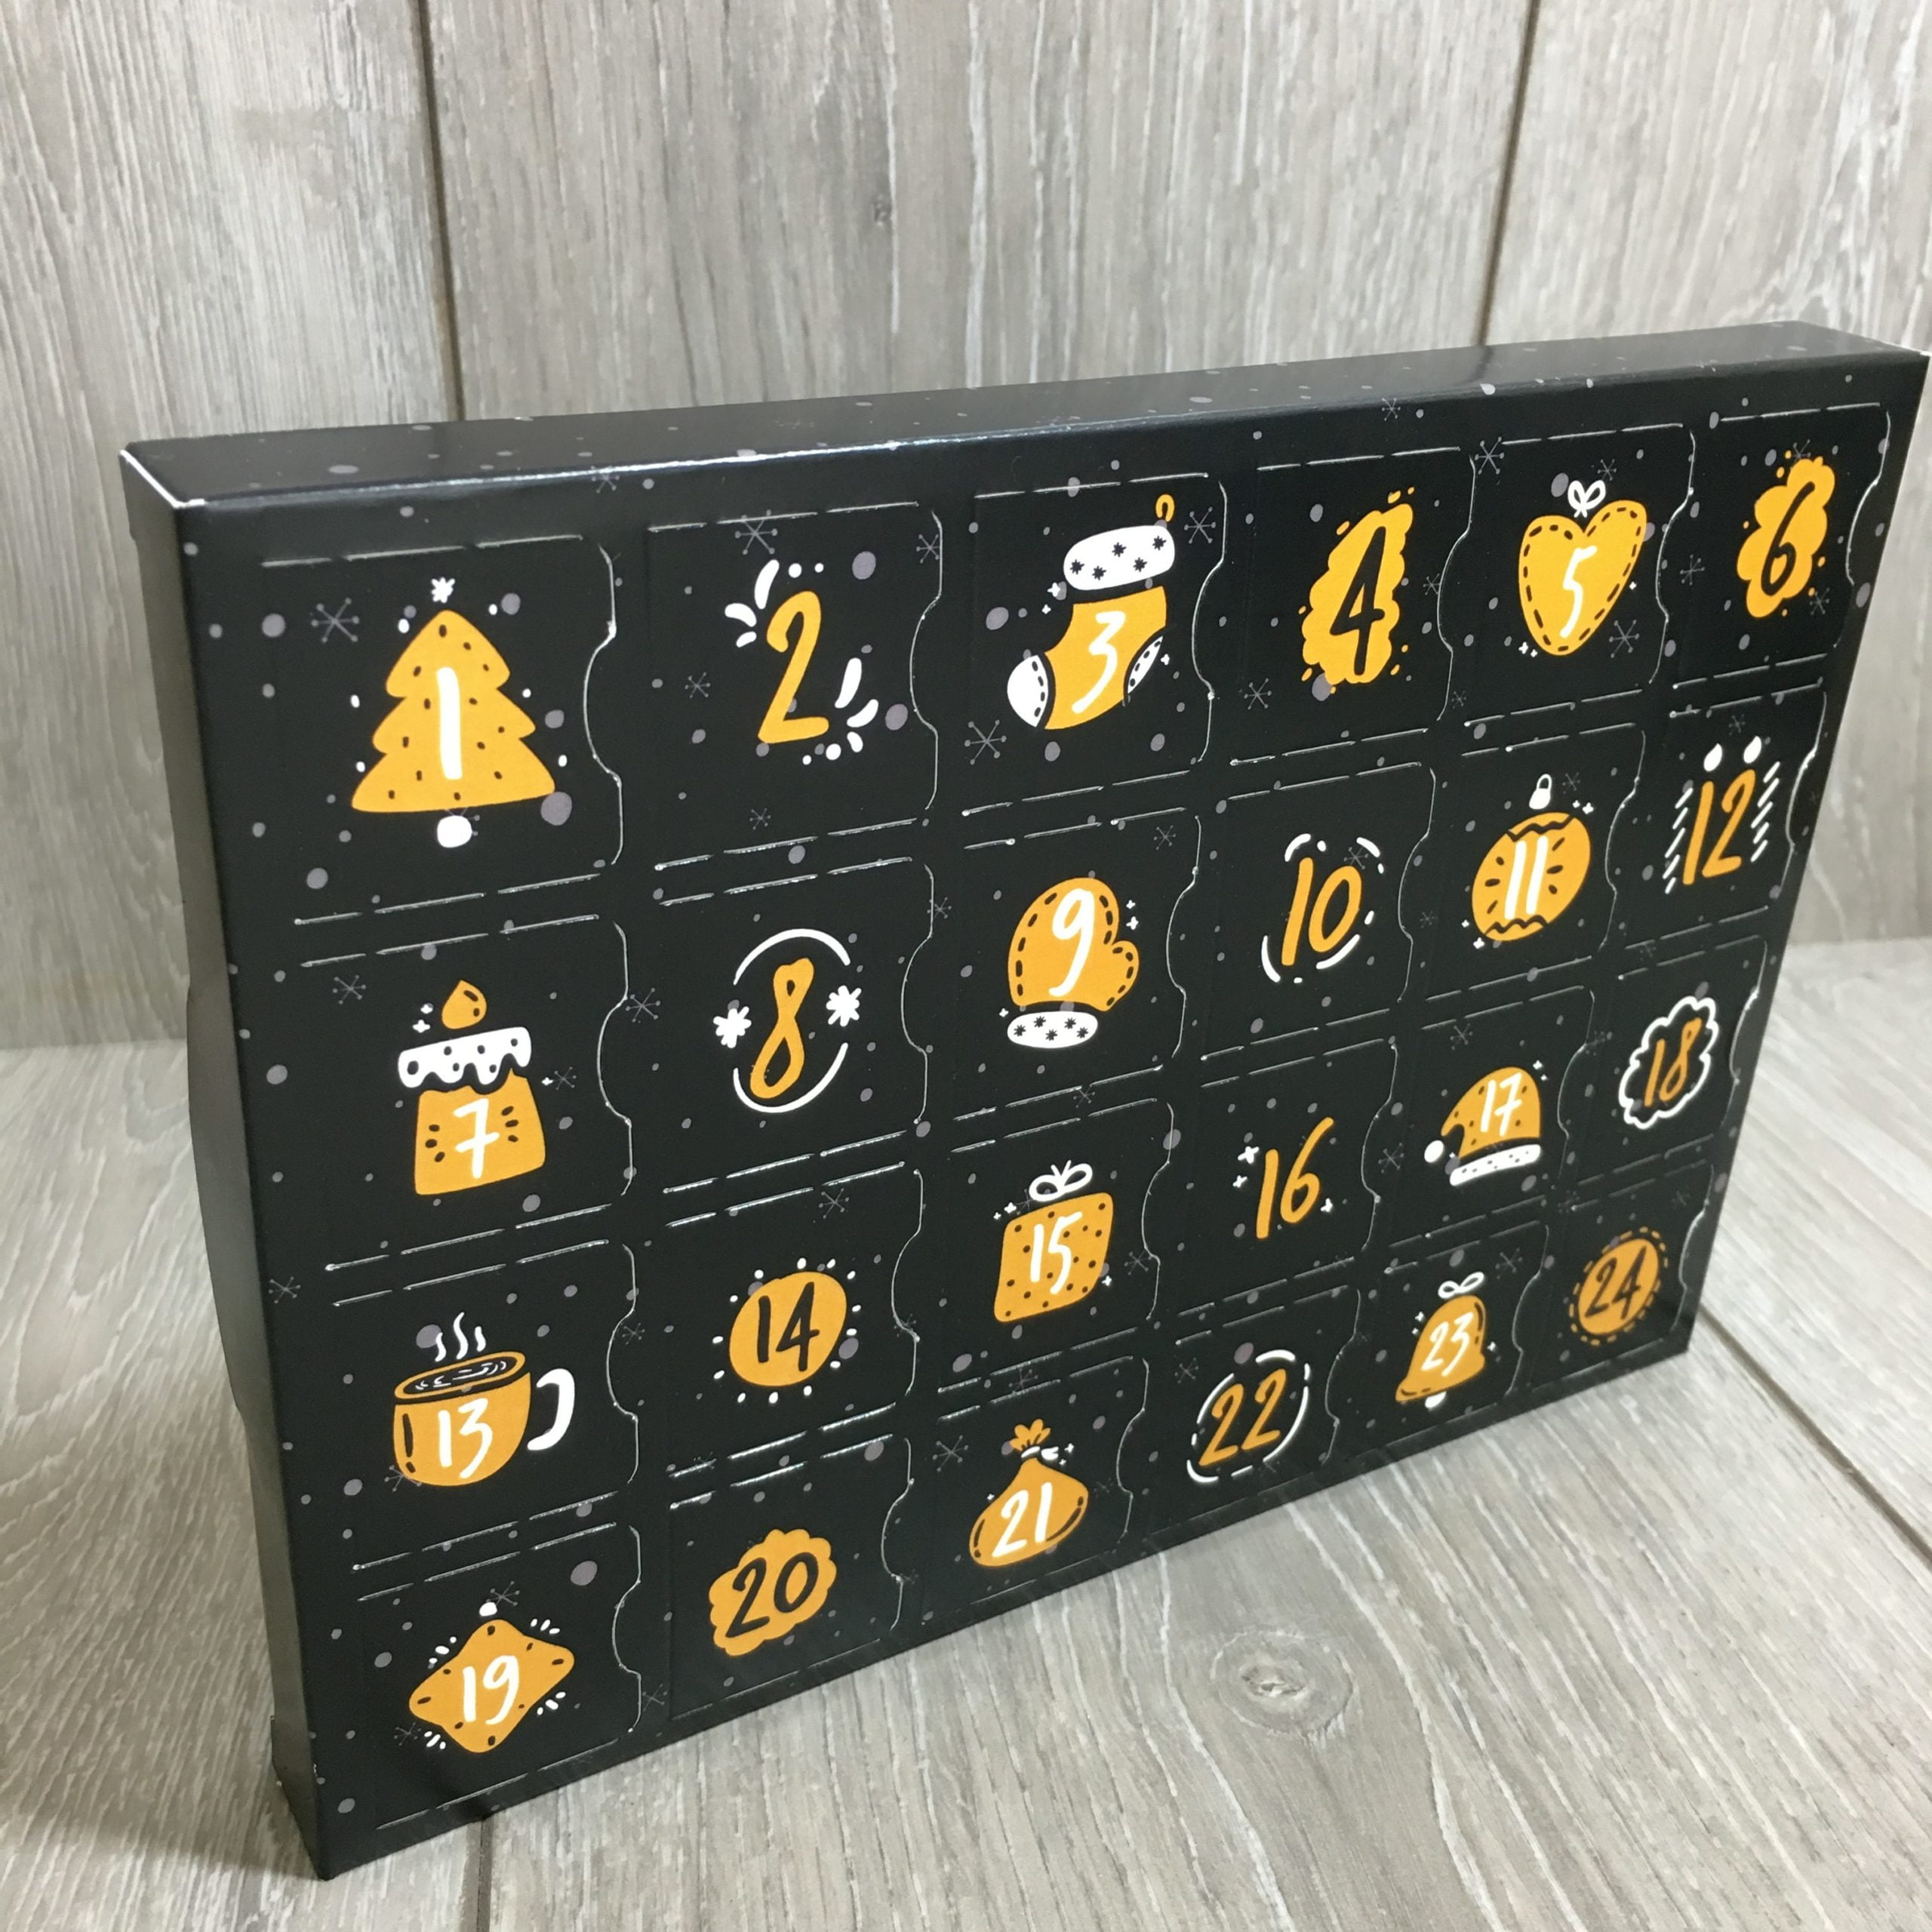 Create Your Own Advent Calendar Selection Box with 24 Compartment Tray